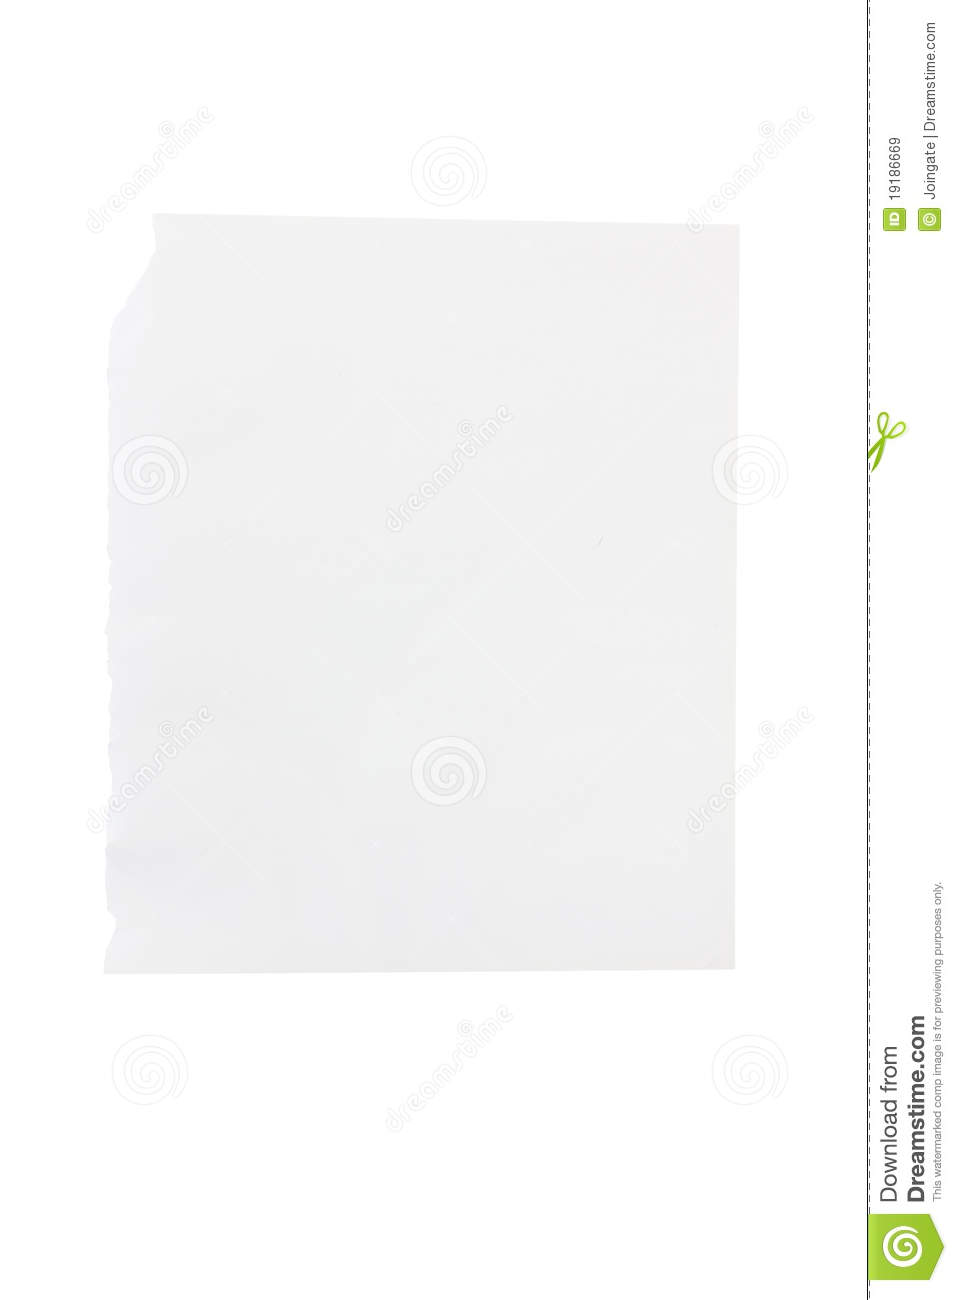 blank piece of torn notebook or sketchbook paper stock image - image